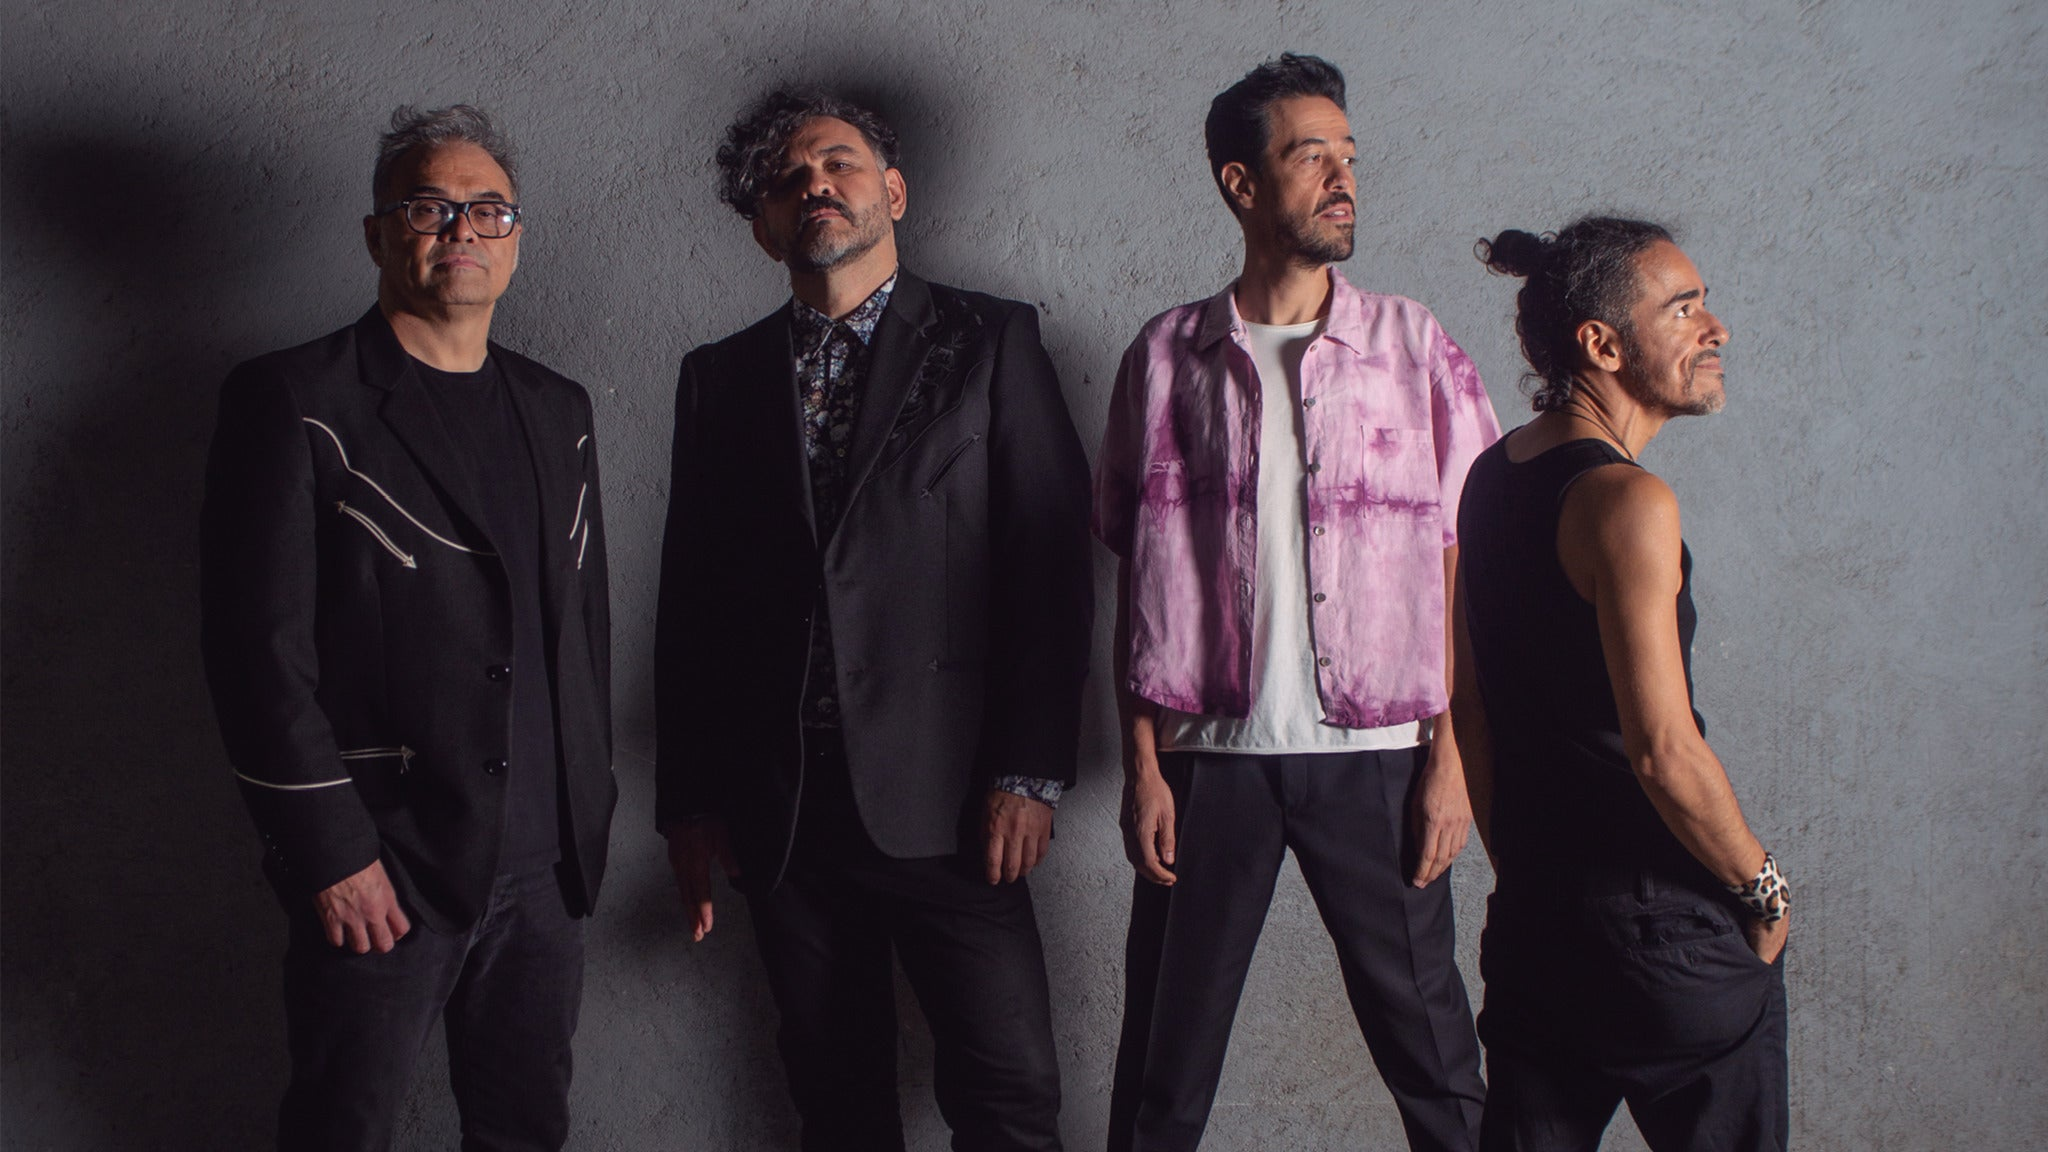 Cafe Tacvba - USA Tour 2021 presale code for event tickets in El Paso, TX (Abraham Chavez Theatre)